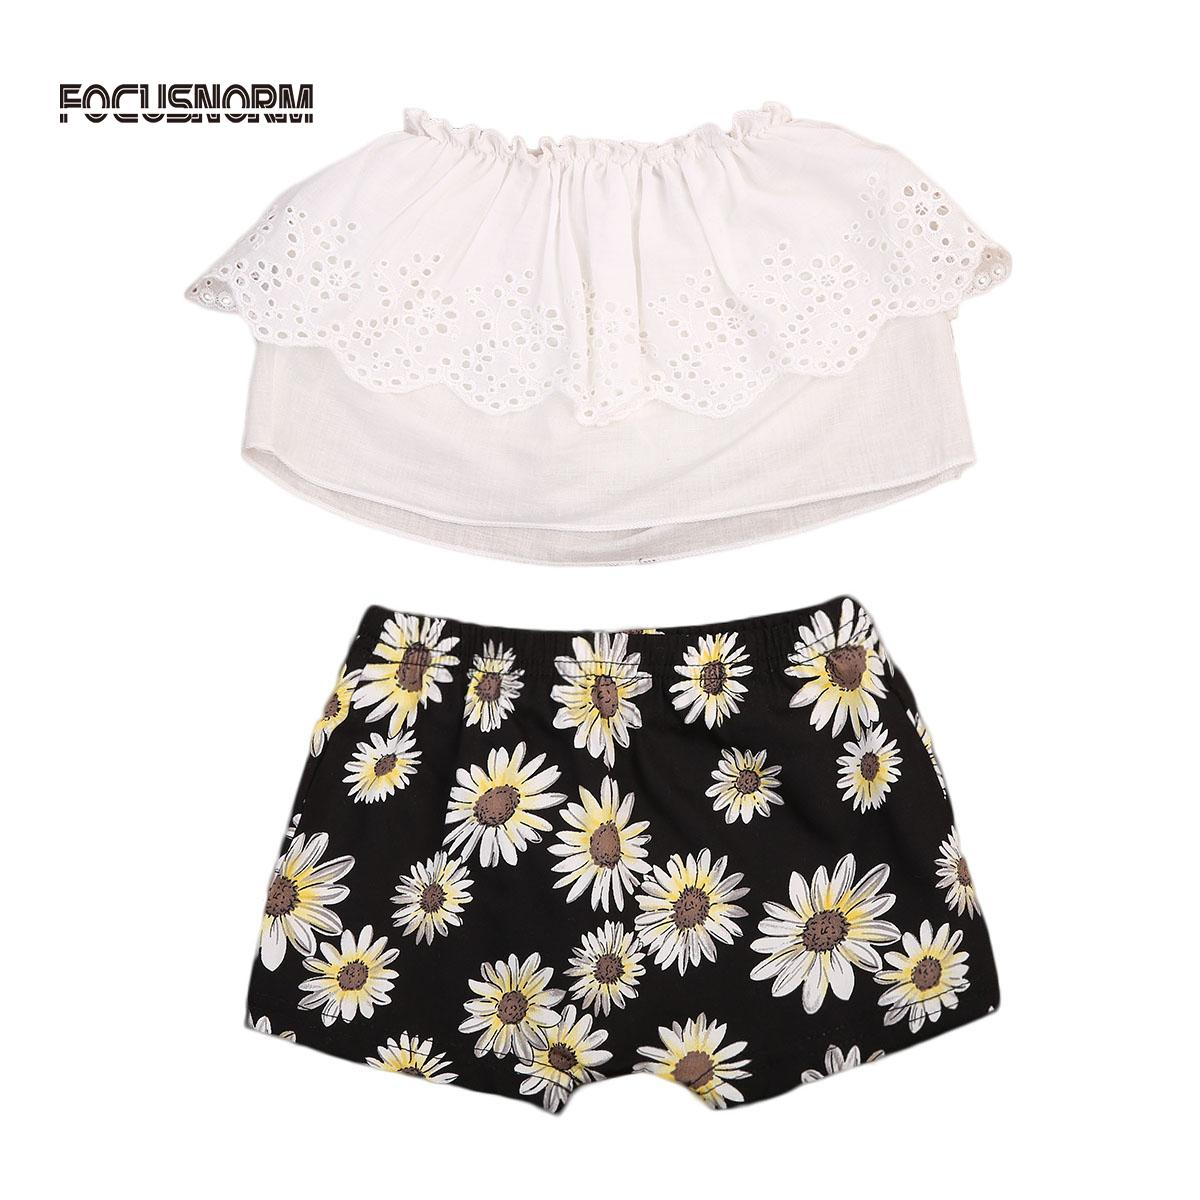 New Cute Newborn Baby Girl Clothes Cotton Off Shoulder Top T Shirt Sunflower Shorts Outfits Clothes Hot